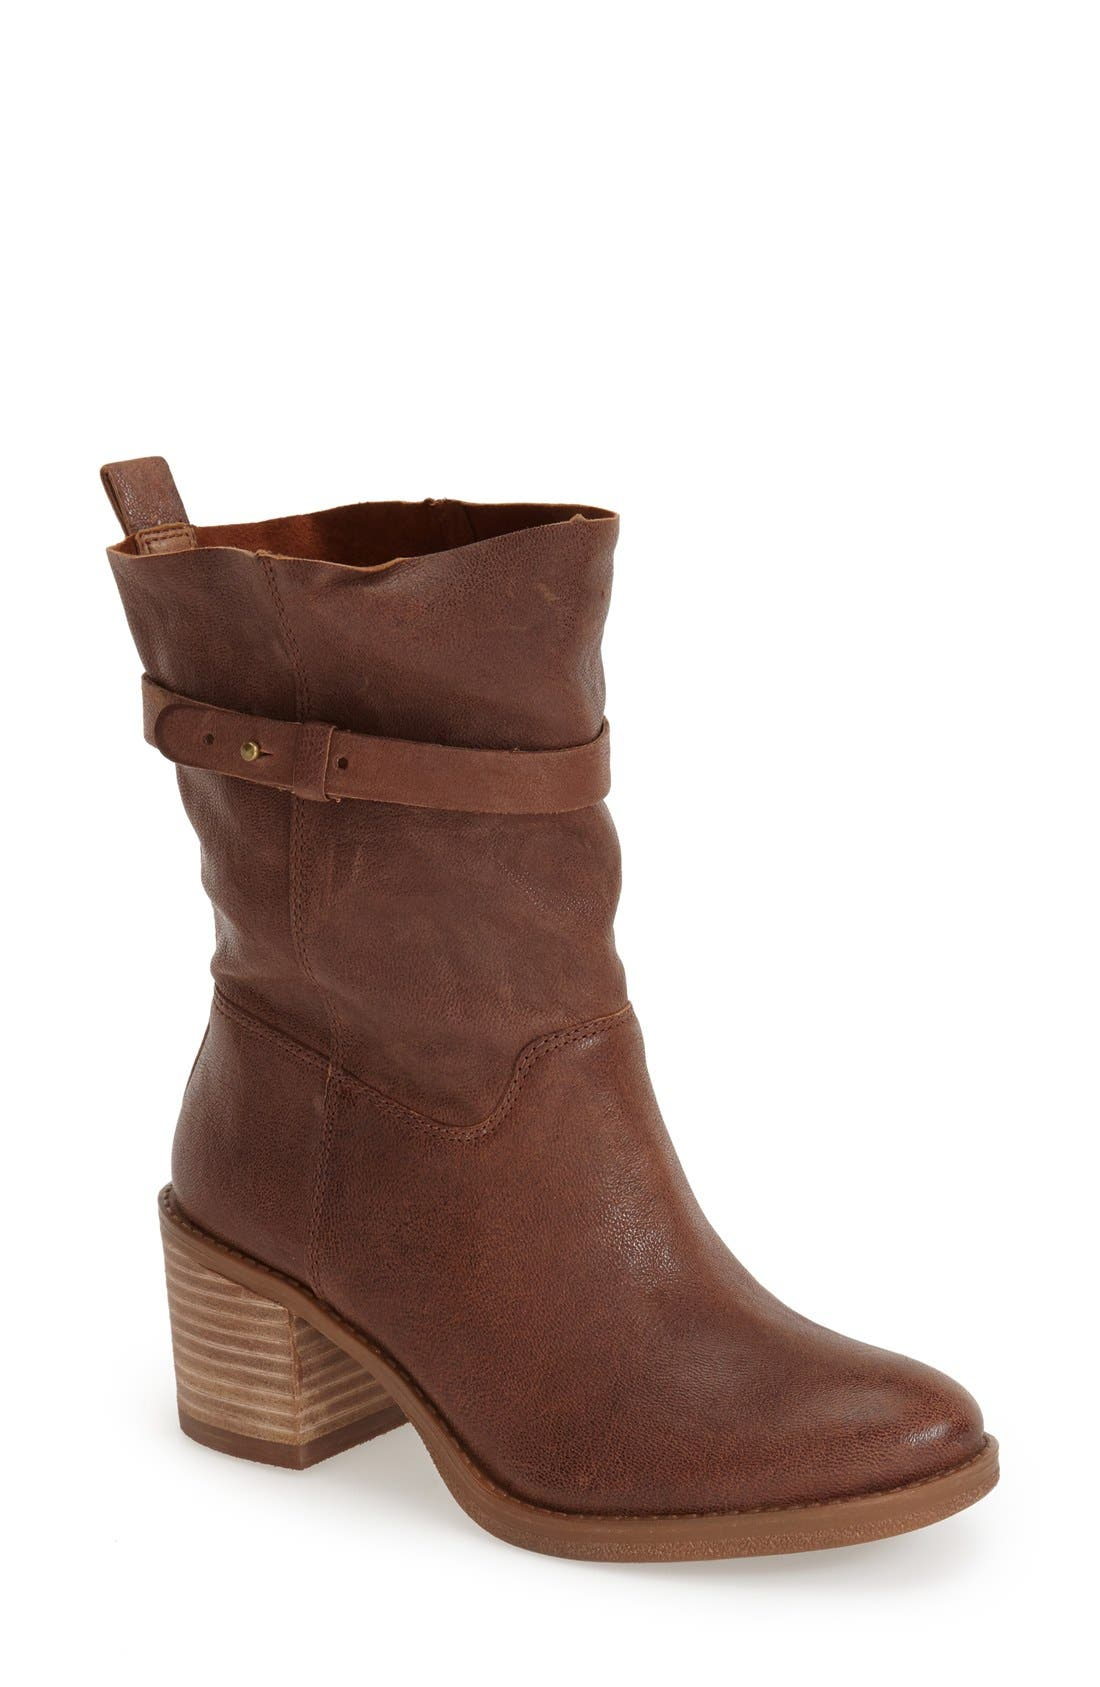 Alternate Image 1 Selected - Lucky Brand 'Ramsey' Pull-On Boot (Women)